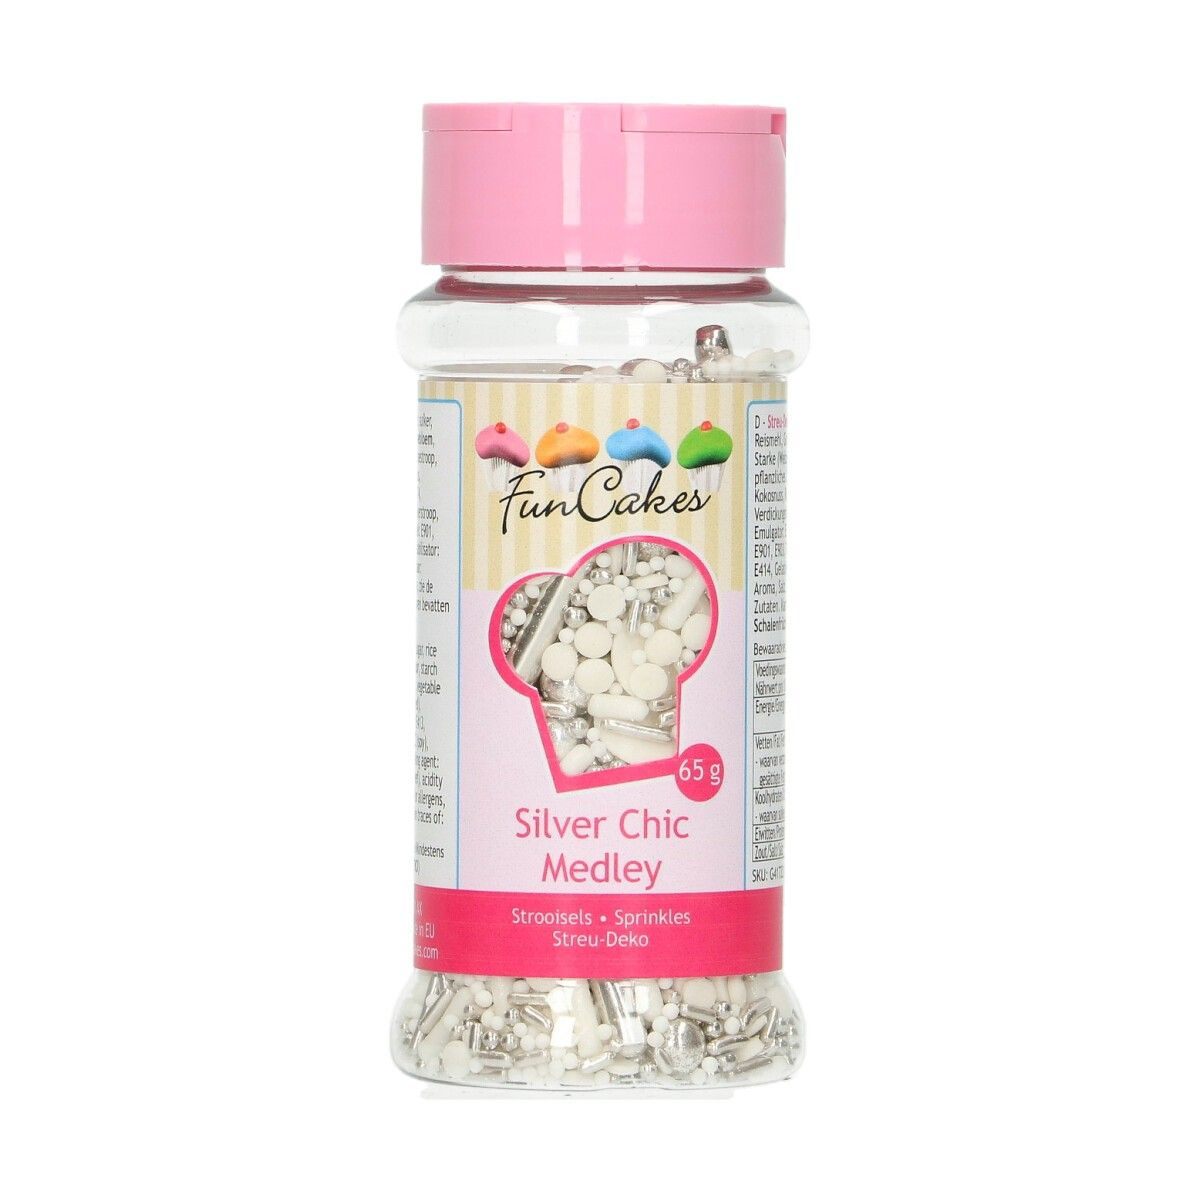 FunCakes Sprinkle Medley -Silver Chic- 65g